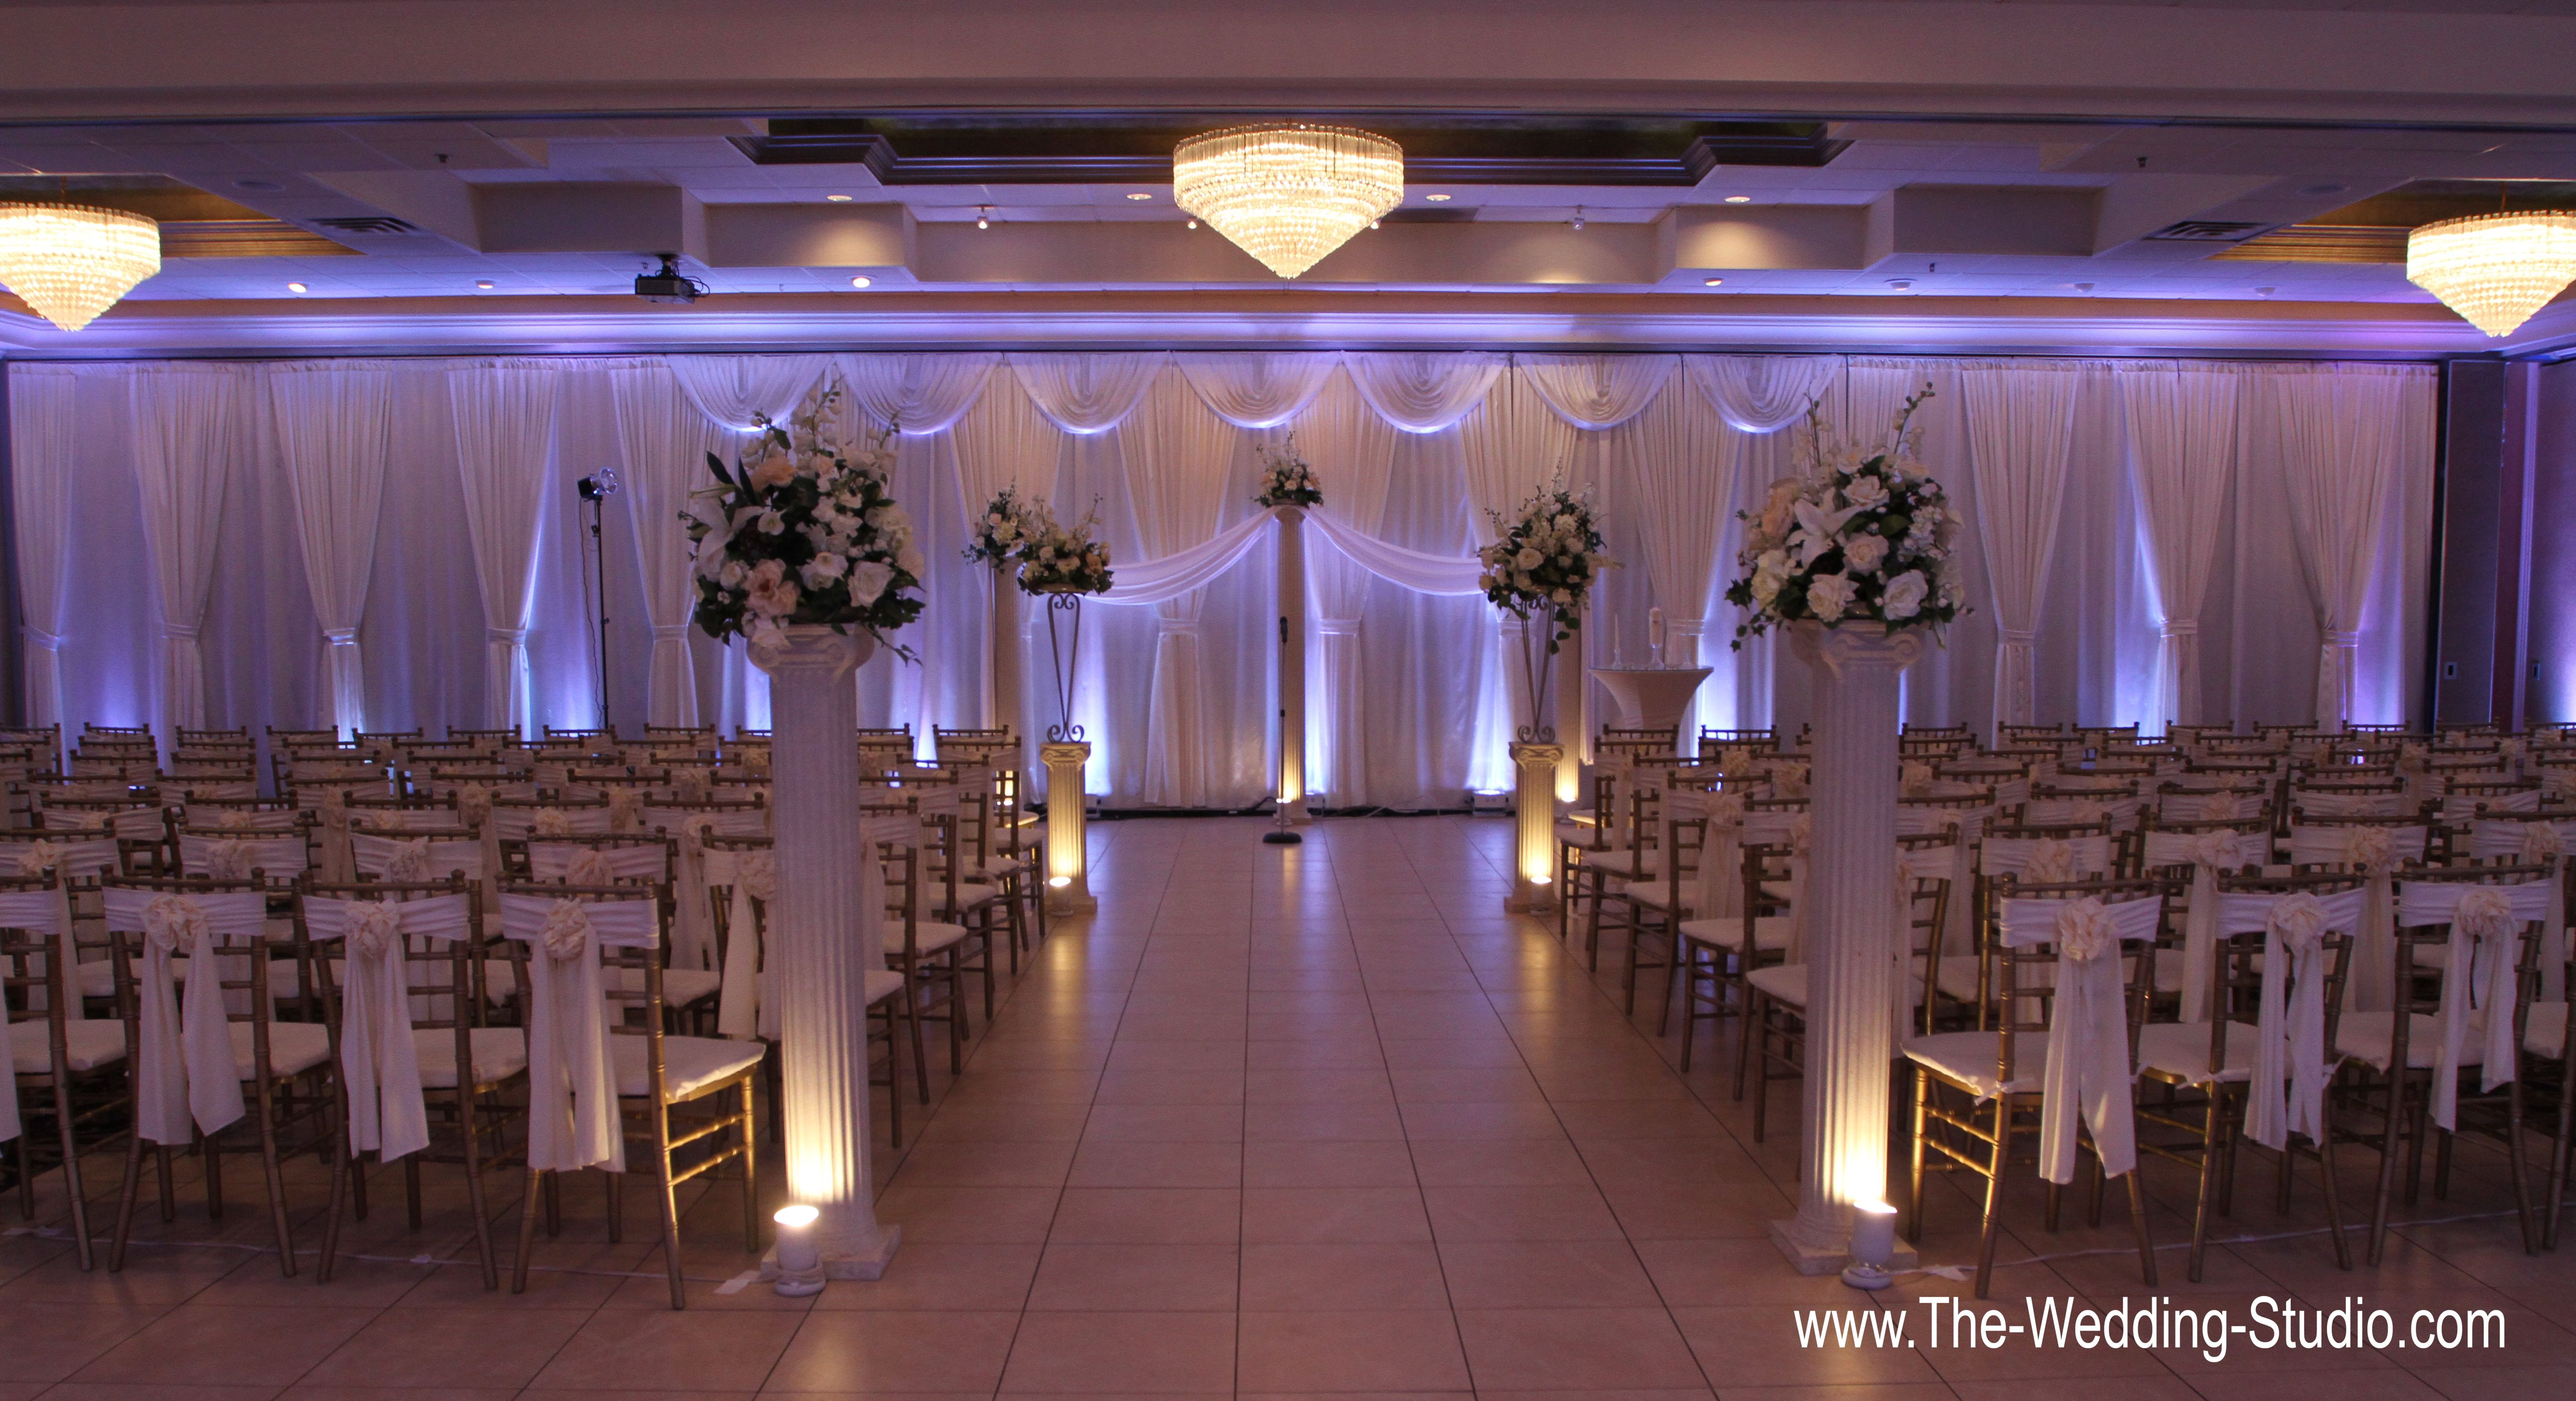 Ceremony Room Set Up For A January Wedding At The Seville Banquets In Streamwood Photographed By Studio Schaumburg Il